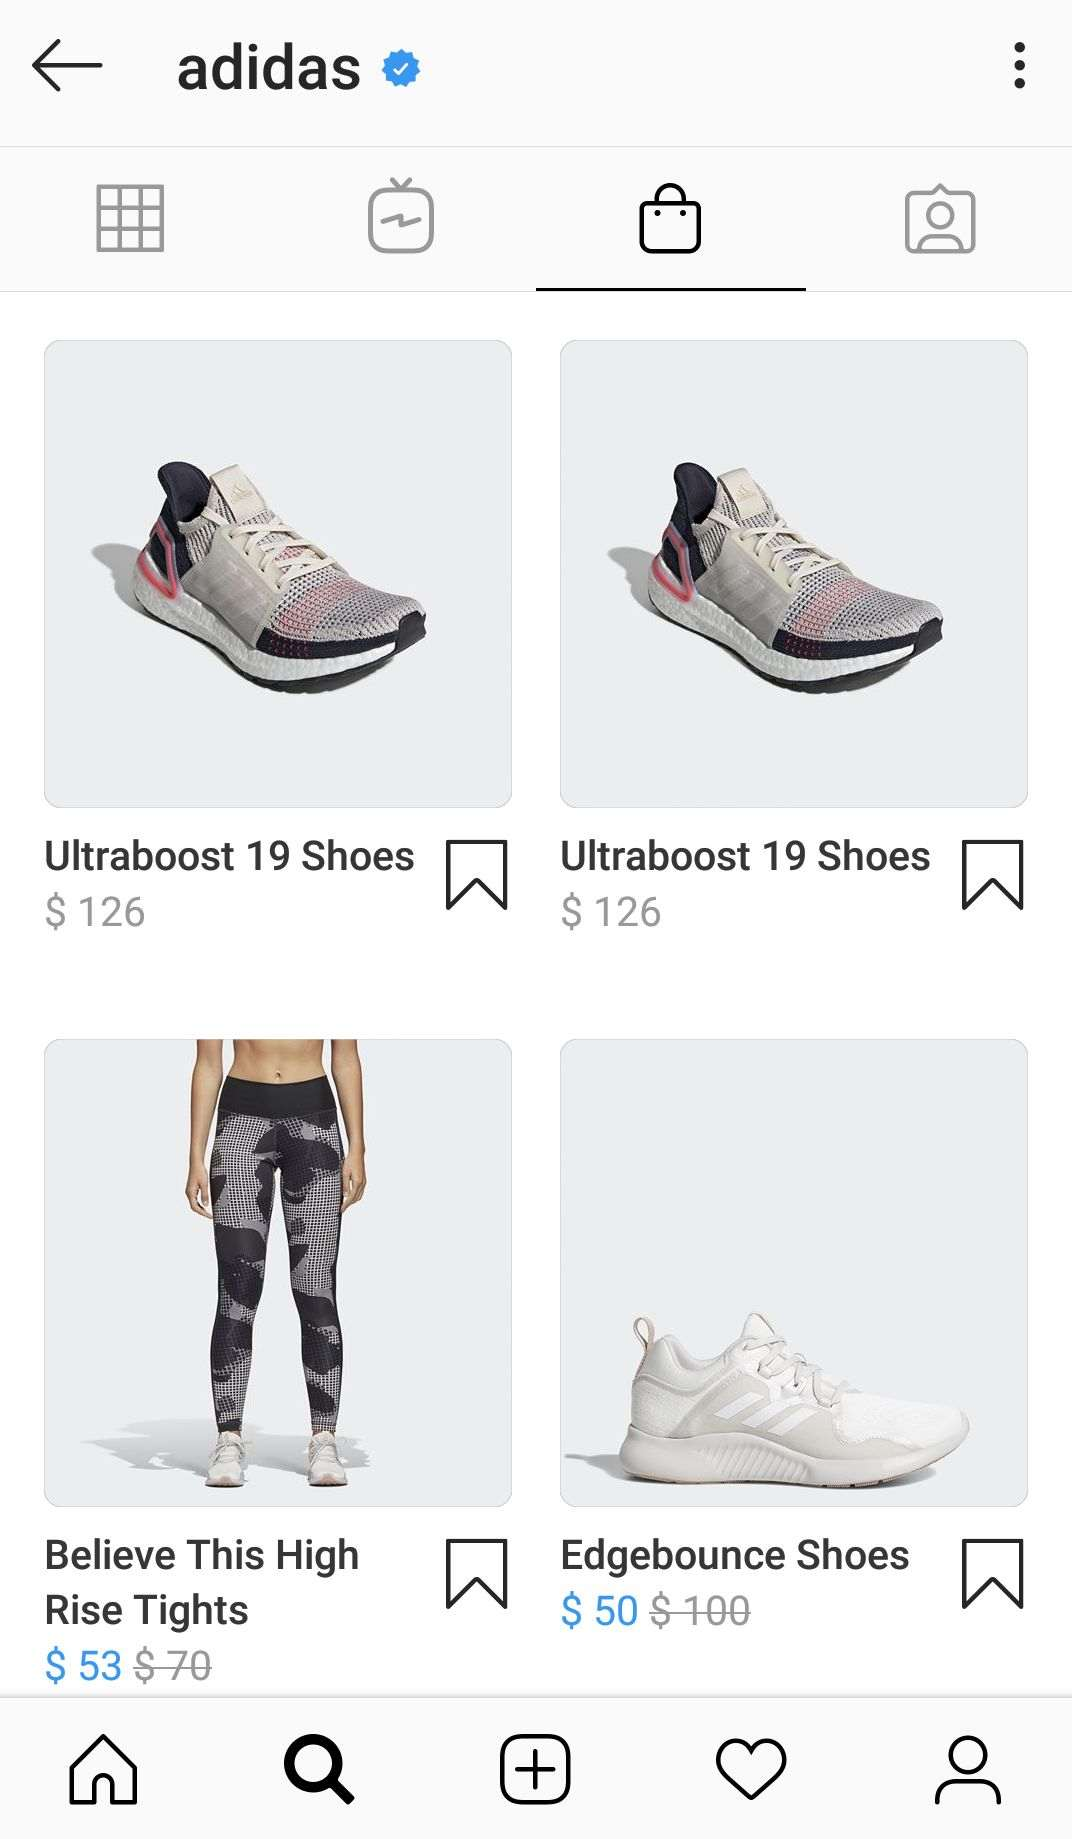 Adidas shoppable posts